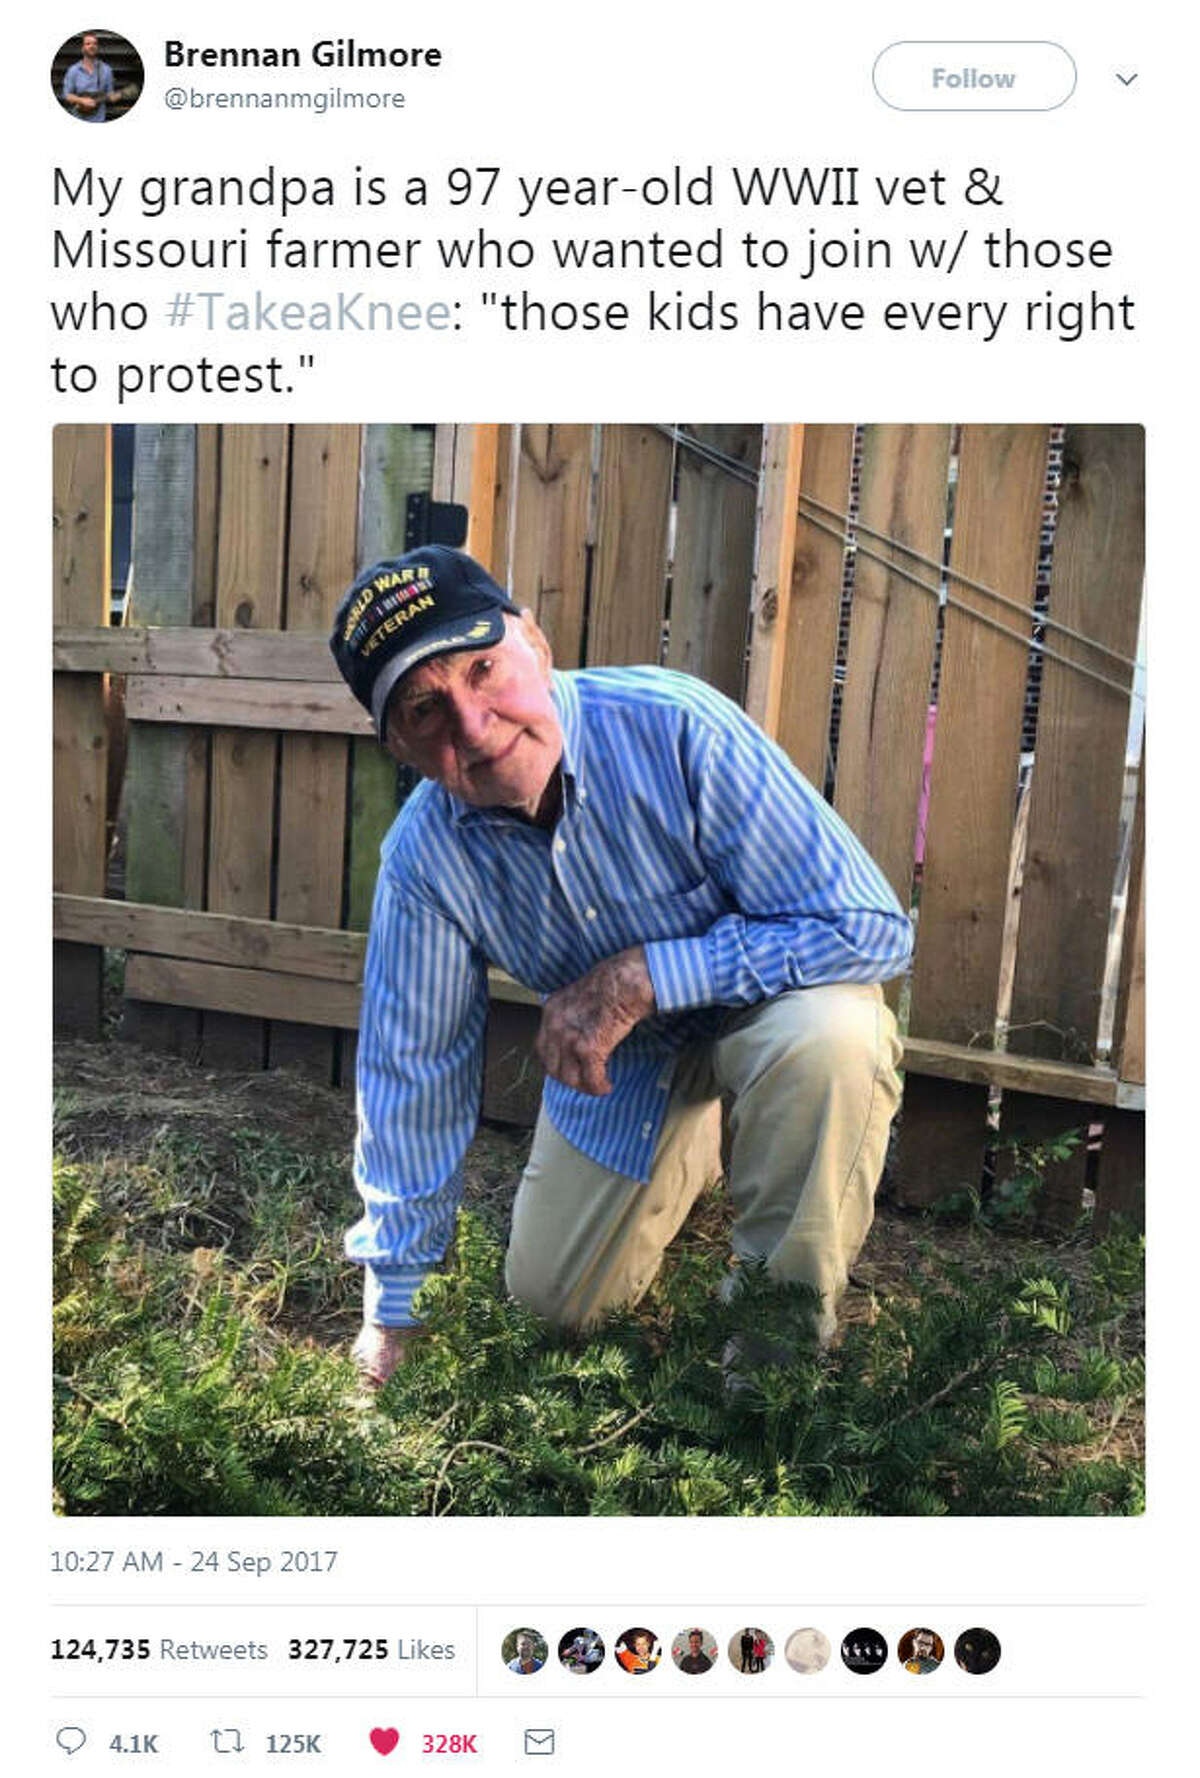 A 97-year-old WWII veteran lent his support to hundreds of athletes around the U.S. protesting comments made by President Donald Trump over respecting the national anthem. Swipe through to see photos of athletes taking the knee this weekend.